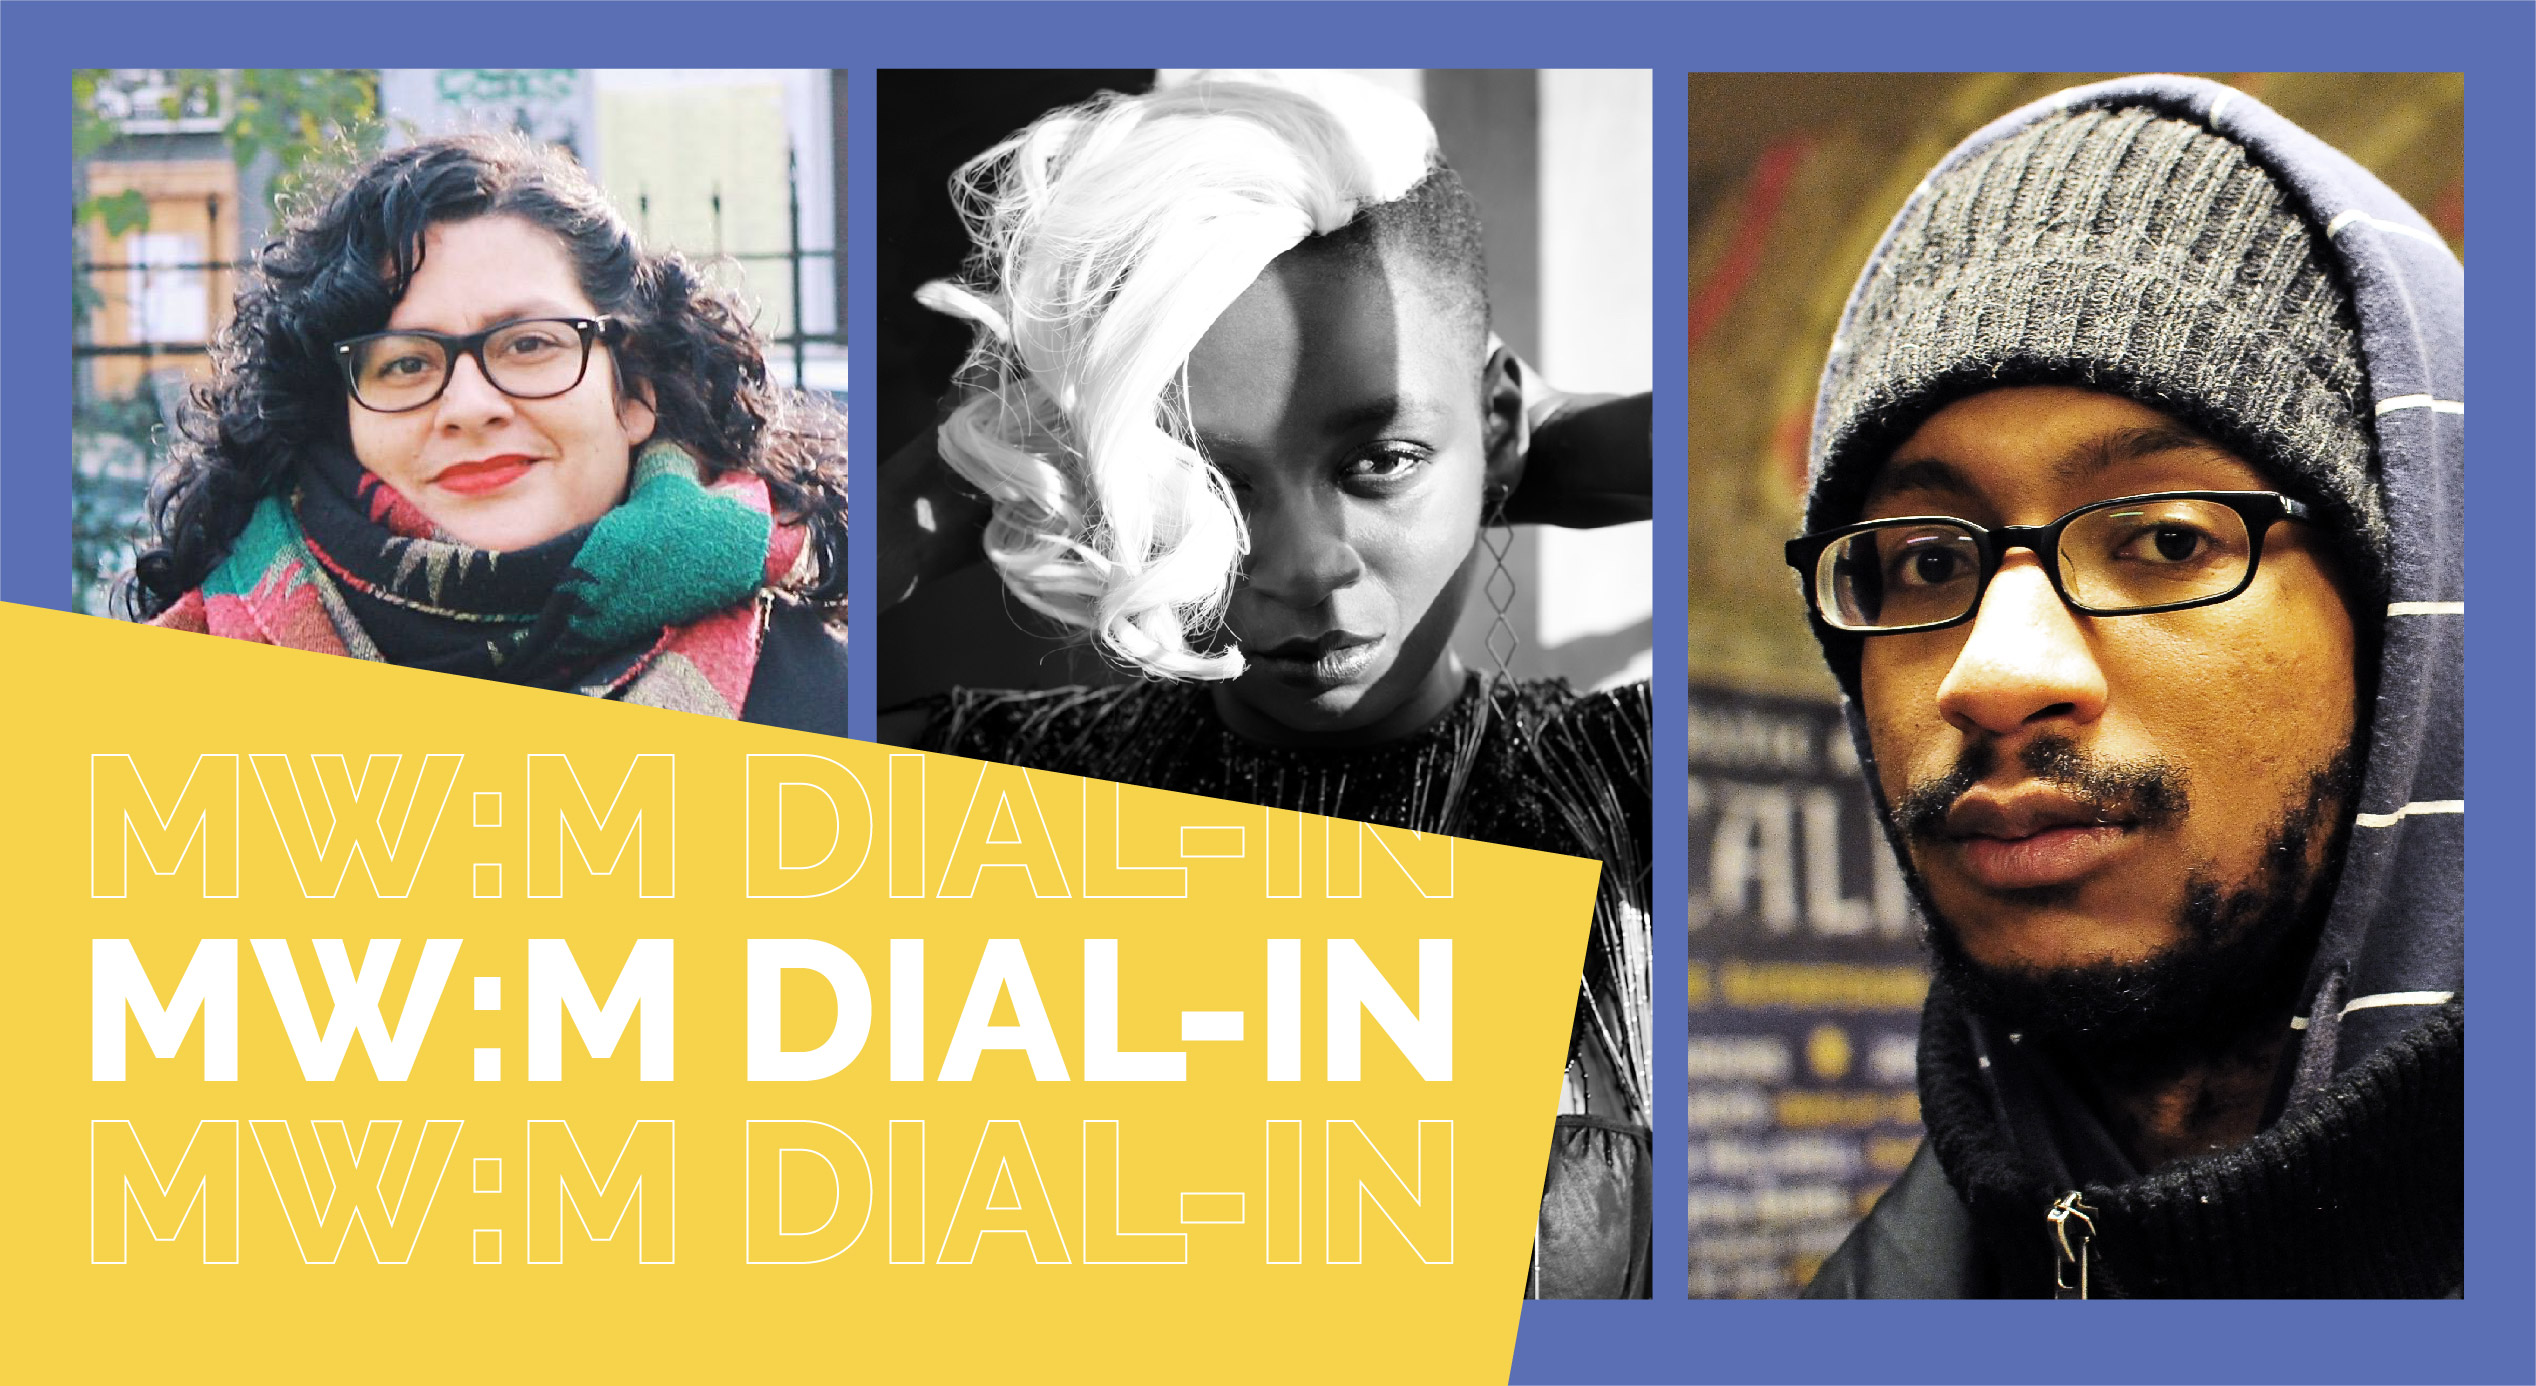 MW:M DIAL-IN: OUR SECOND DIGITAL SHOW IS ON 9TH SEPTEMBER!